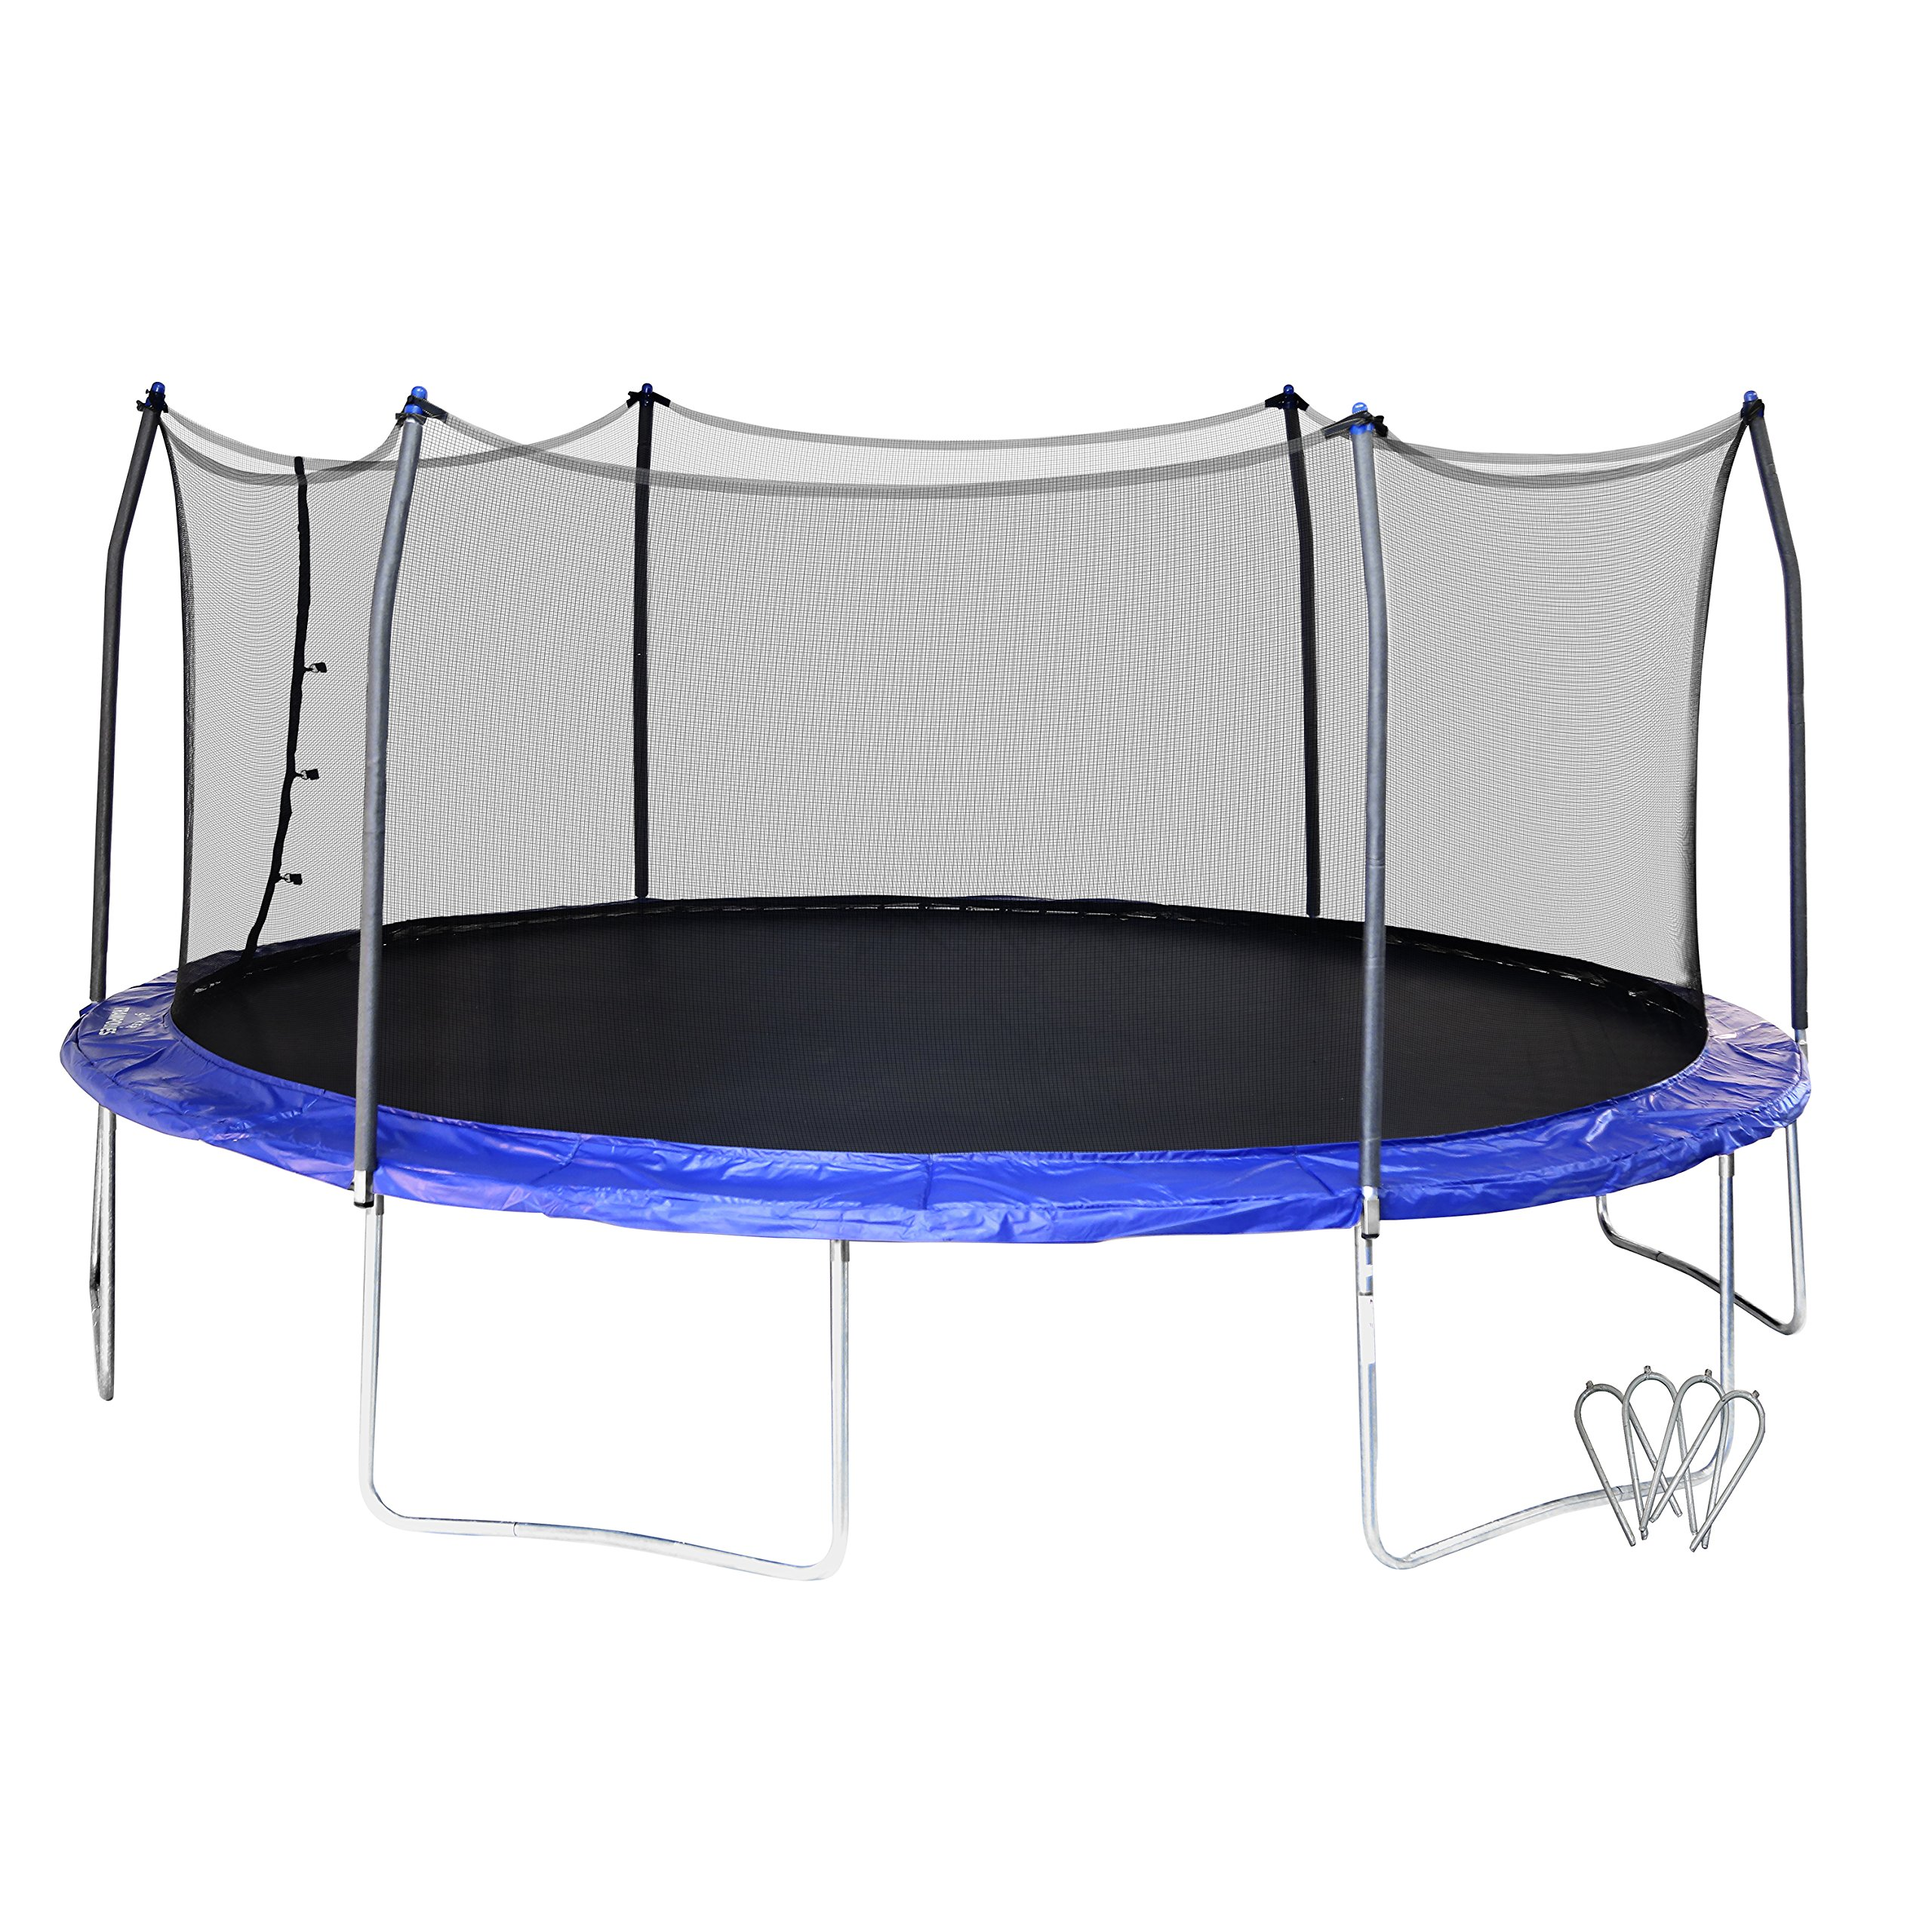 Skywalker SWTC17BWS Oval Trampoline and Enclosure with Wind Stakes (17-Feet)